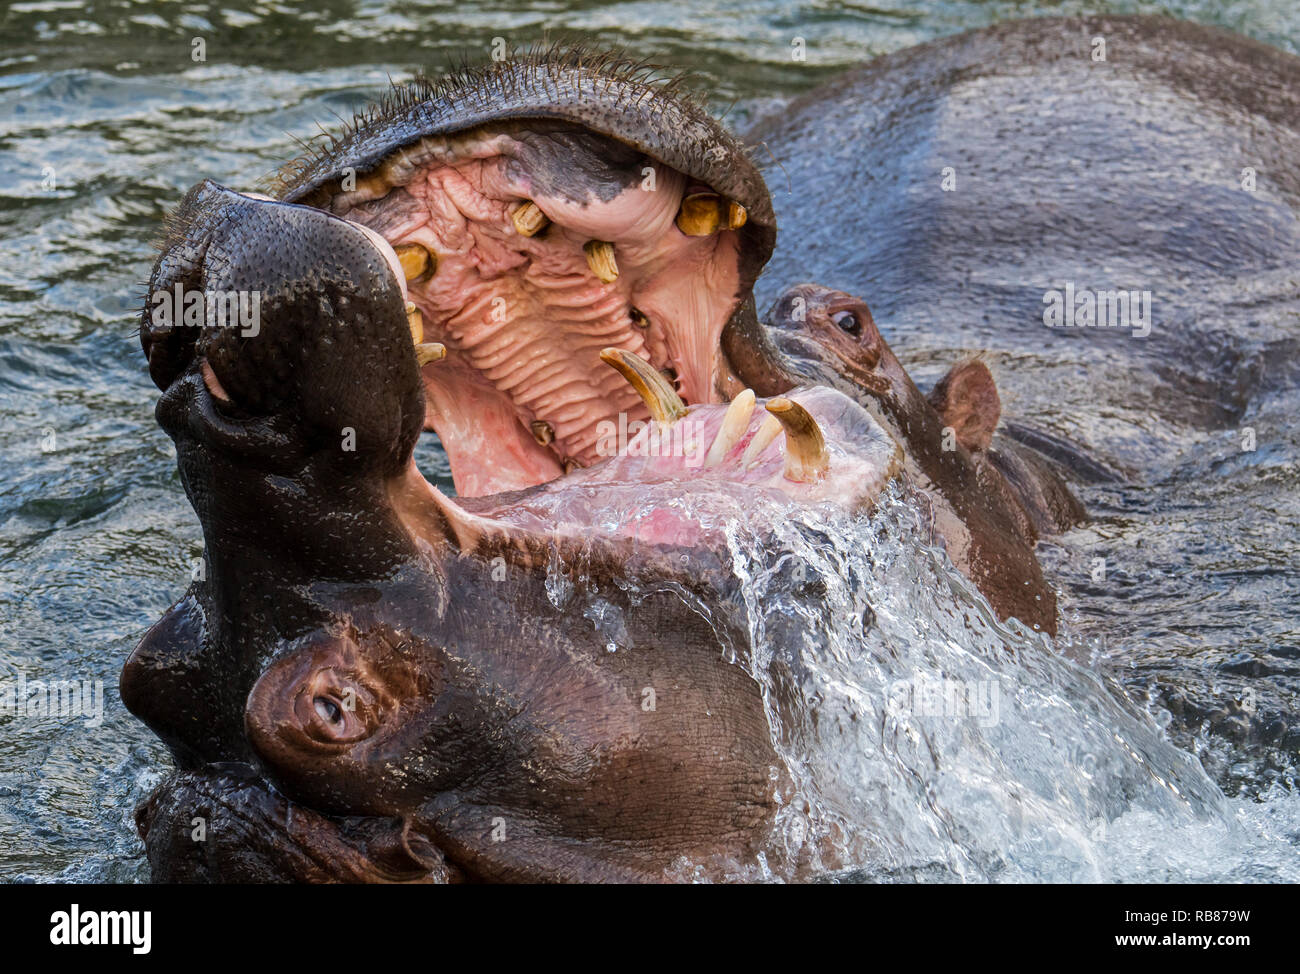 Fighting hippopotamuses / hippos (Hippopotamus amphibius) in lake showing huge teeth and large canine tusks in wide open mouth - Stock Image